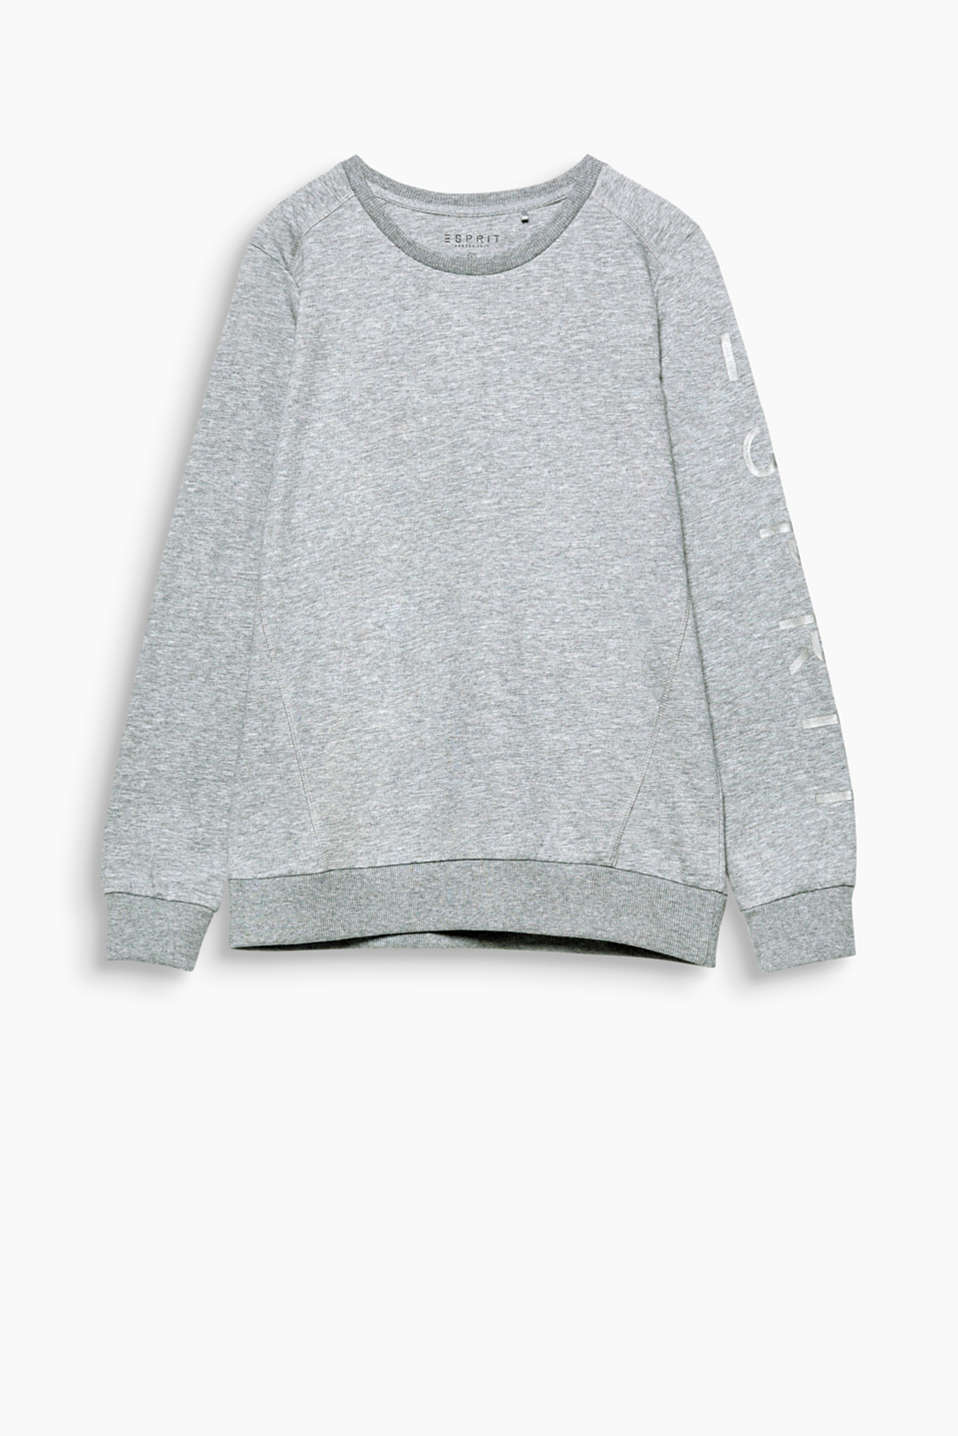 Melange sweatshirt made from soft blended cotton with a tonal glow-in-the-dark logo